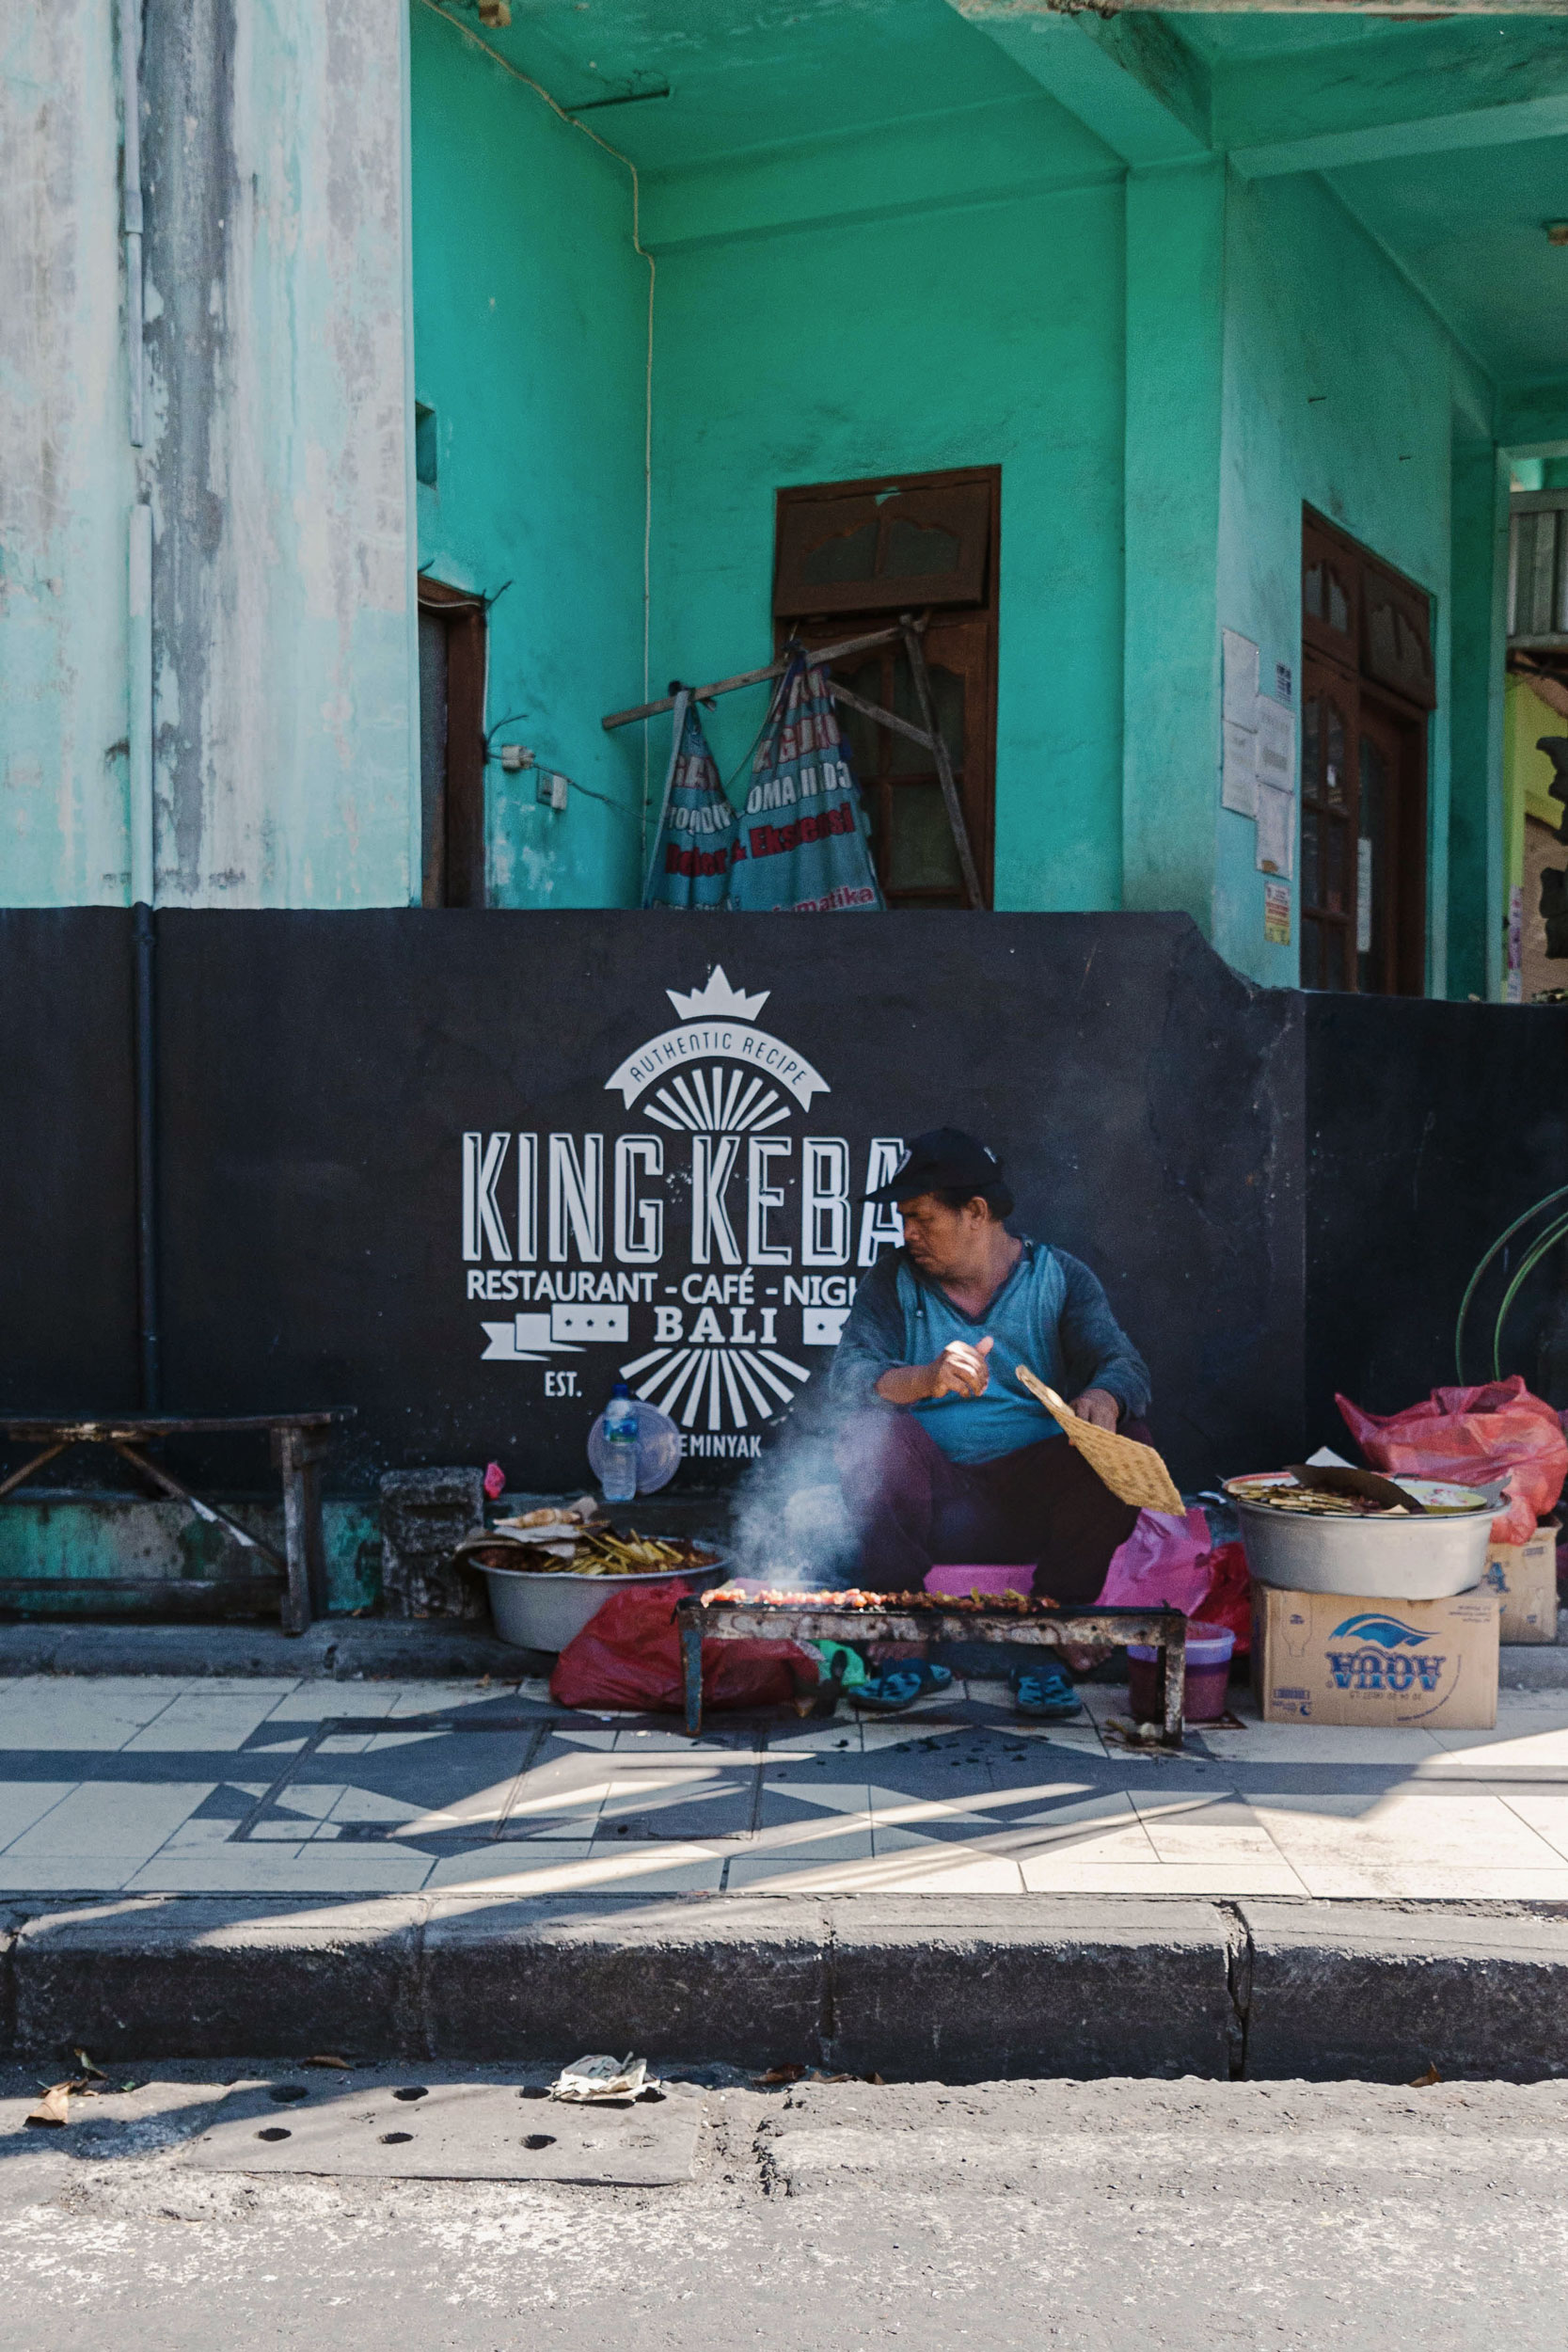 A man grilling on the street in Bali